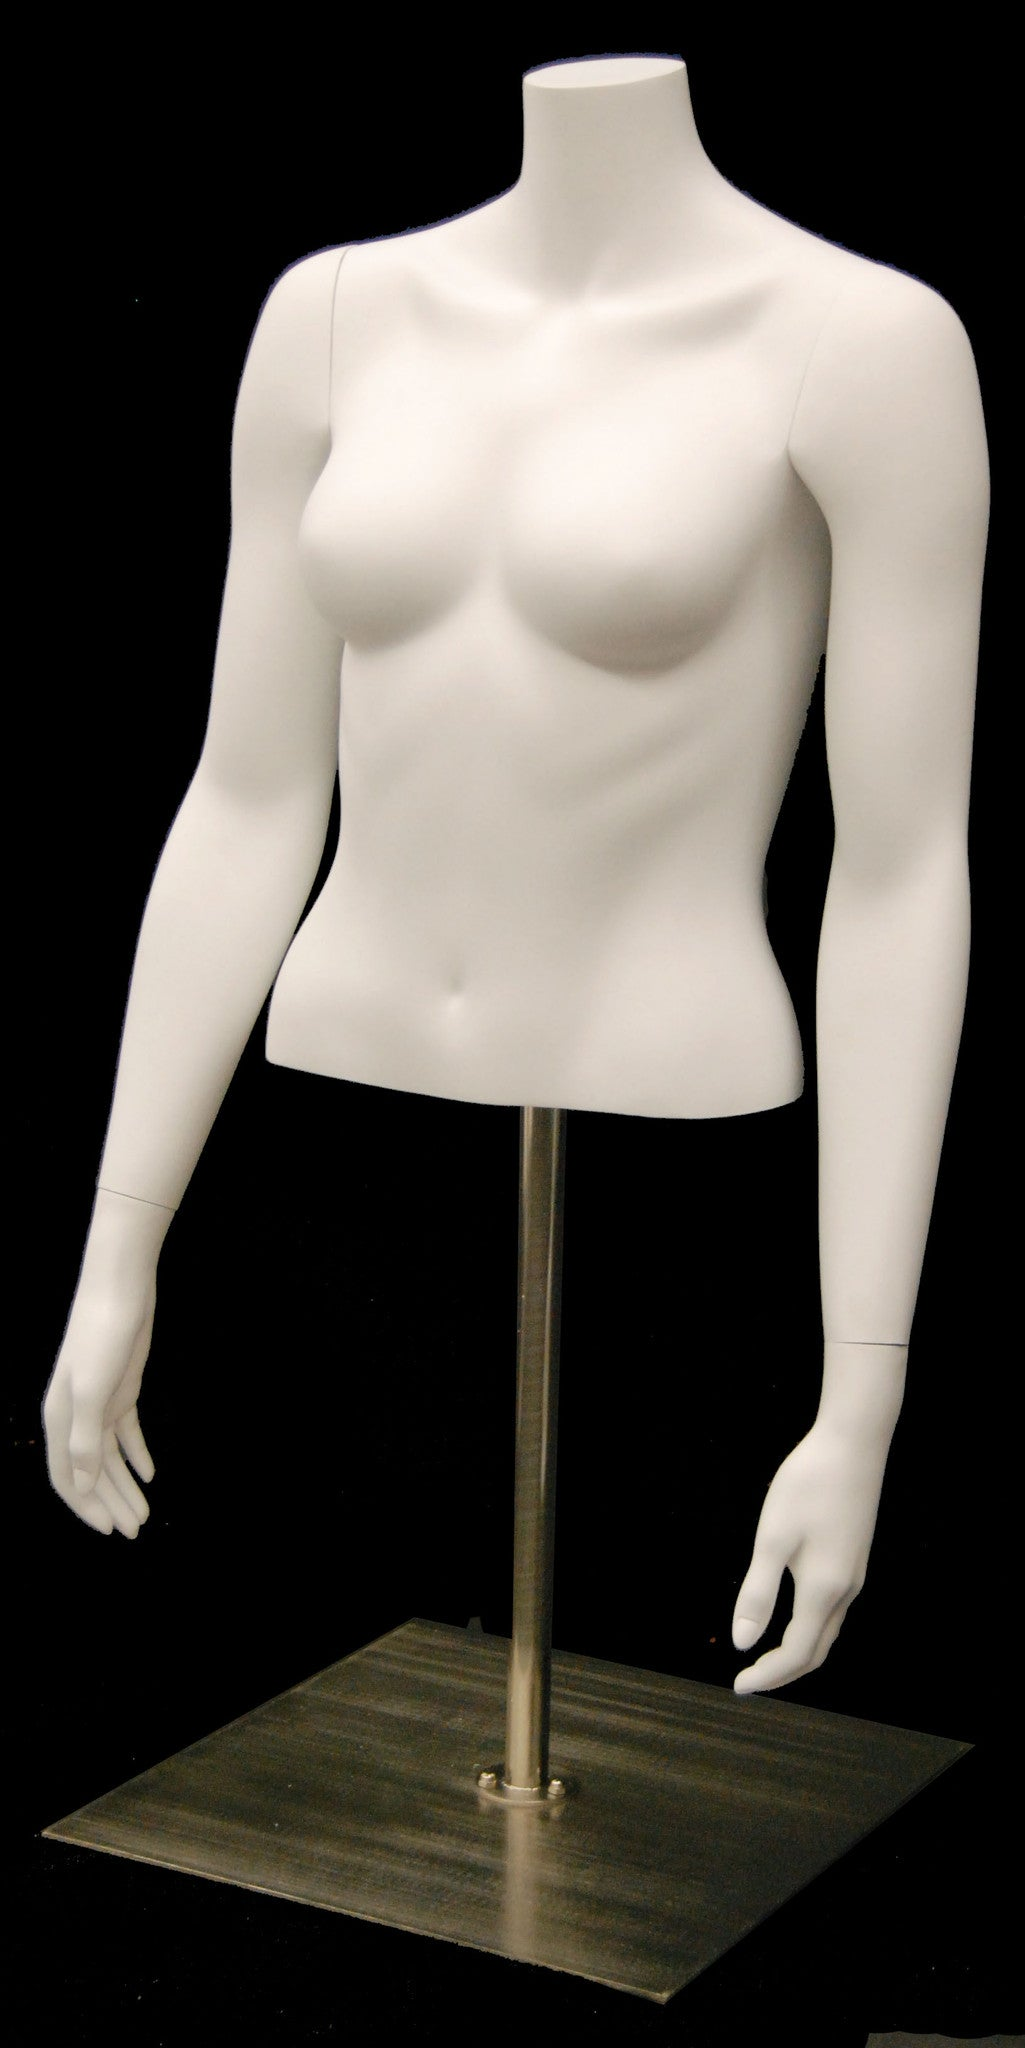 Headless 1/2 Female Torso on Stand